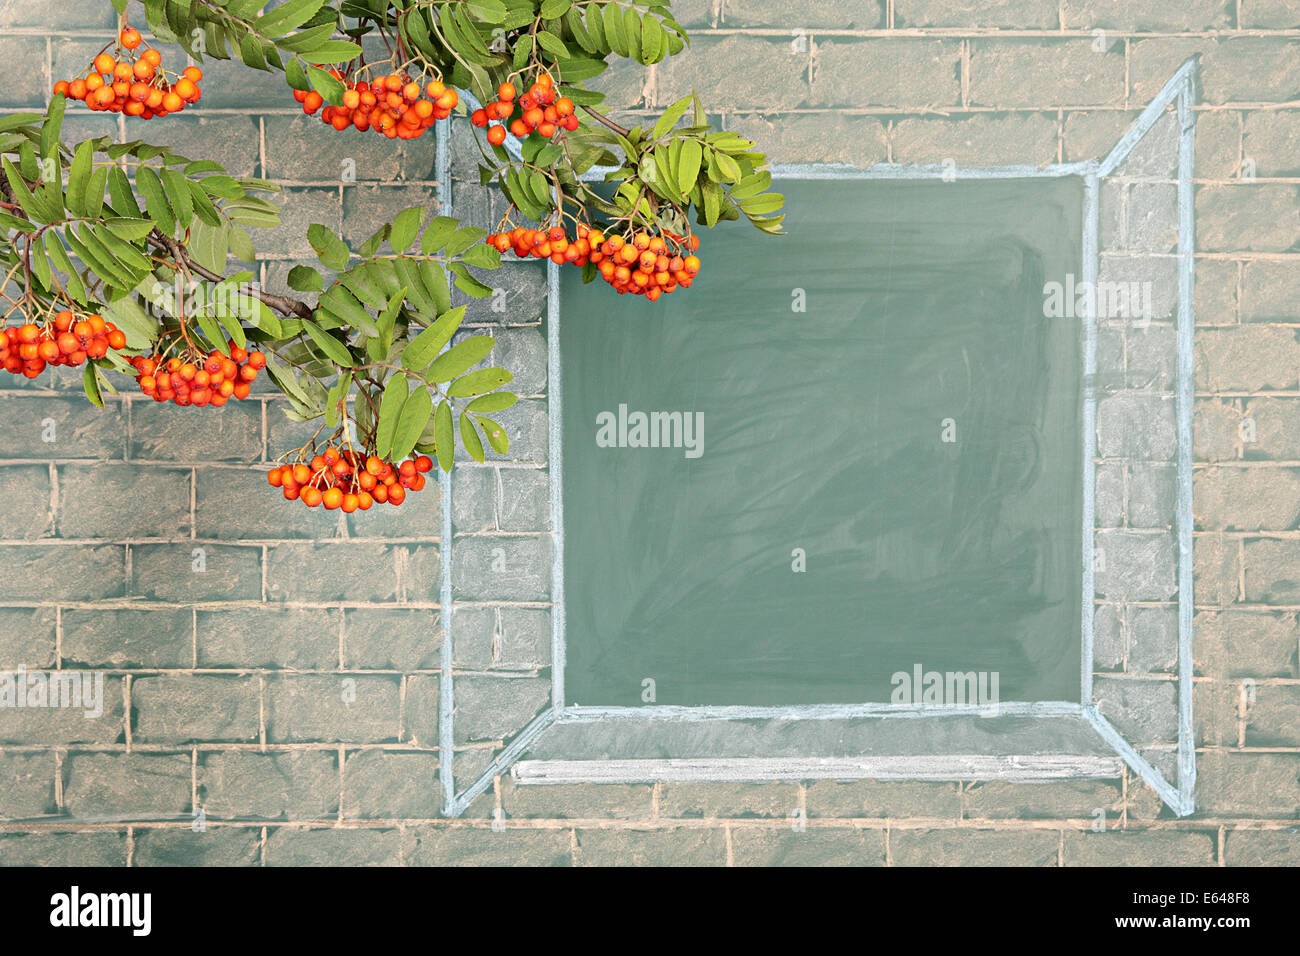 Branches of rowan tree before illustration on a chalkboard of the open window Stock Photo